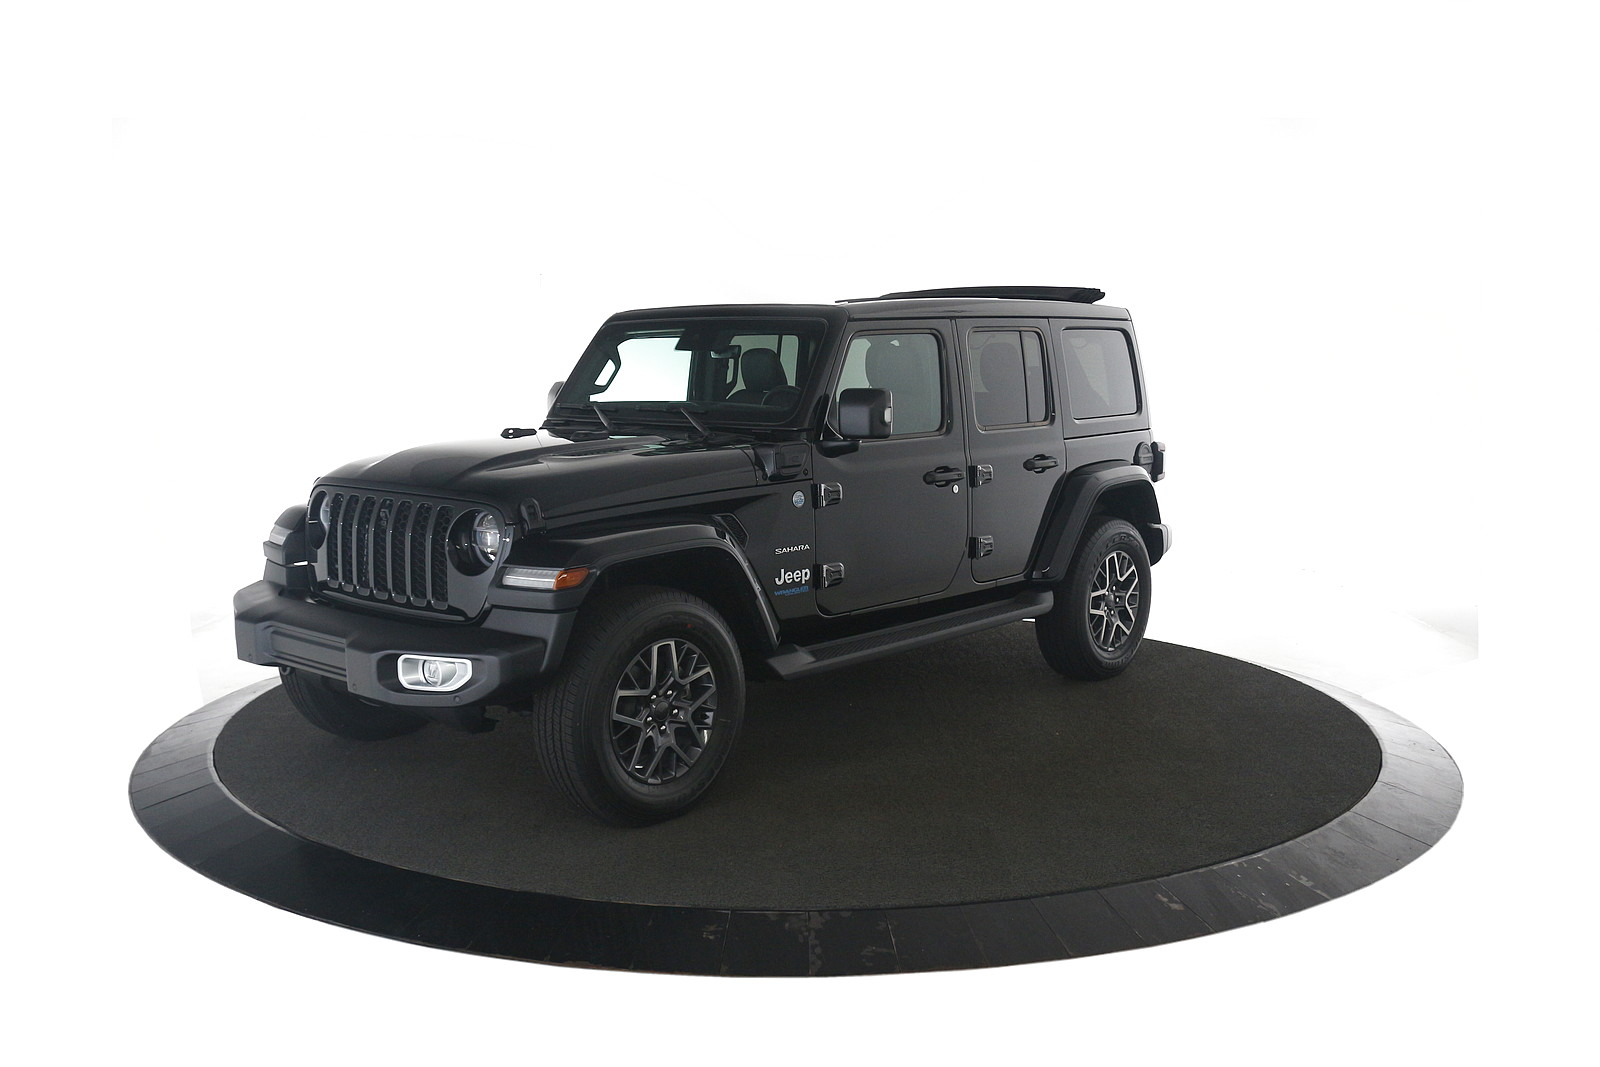 Jeep Wrangler Unlimited 4xe 380 Plug-in Hybrid First Edition